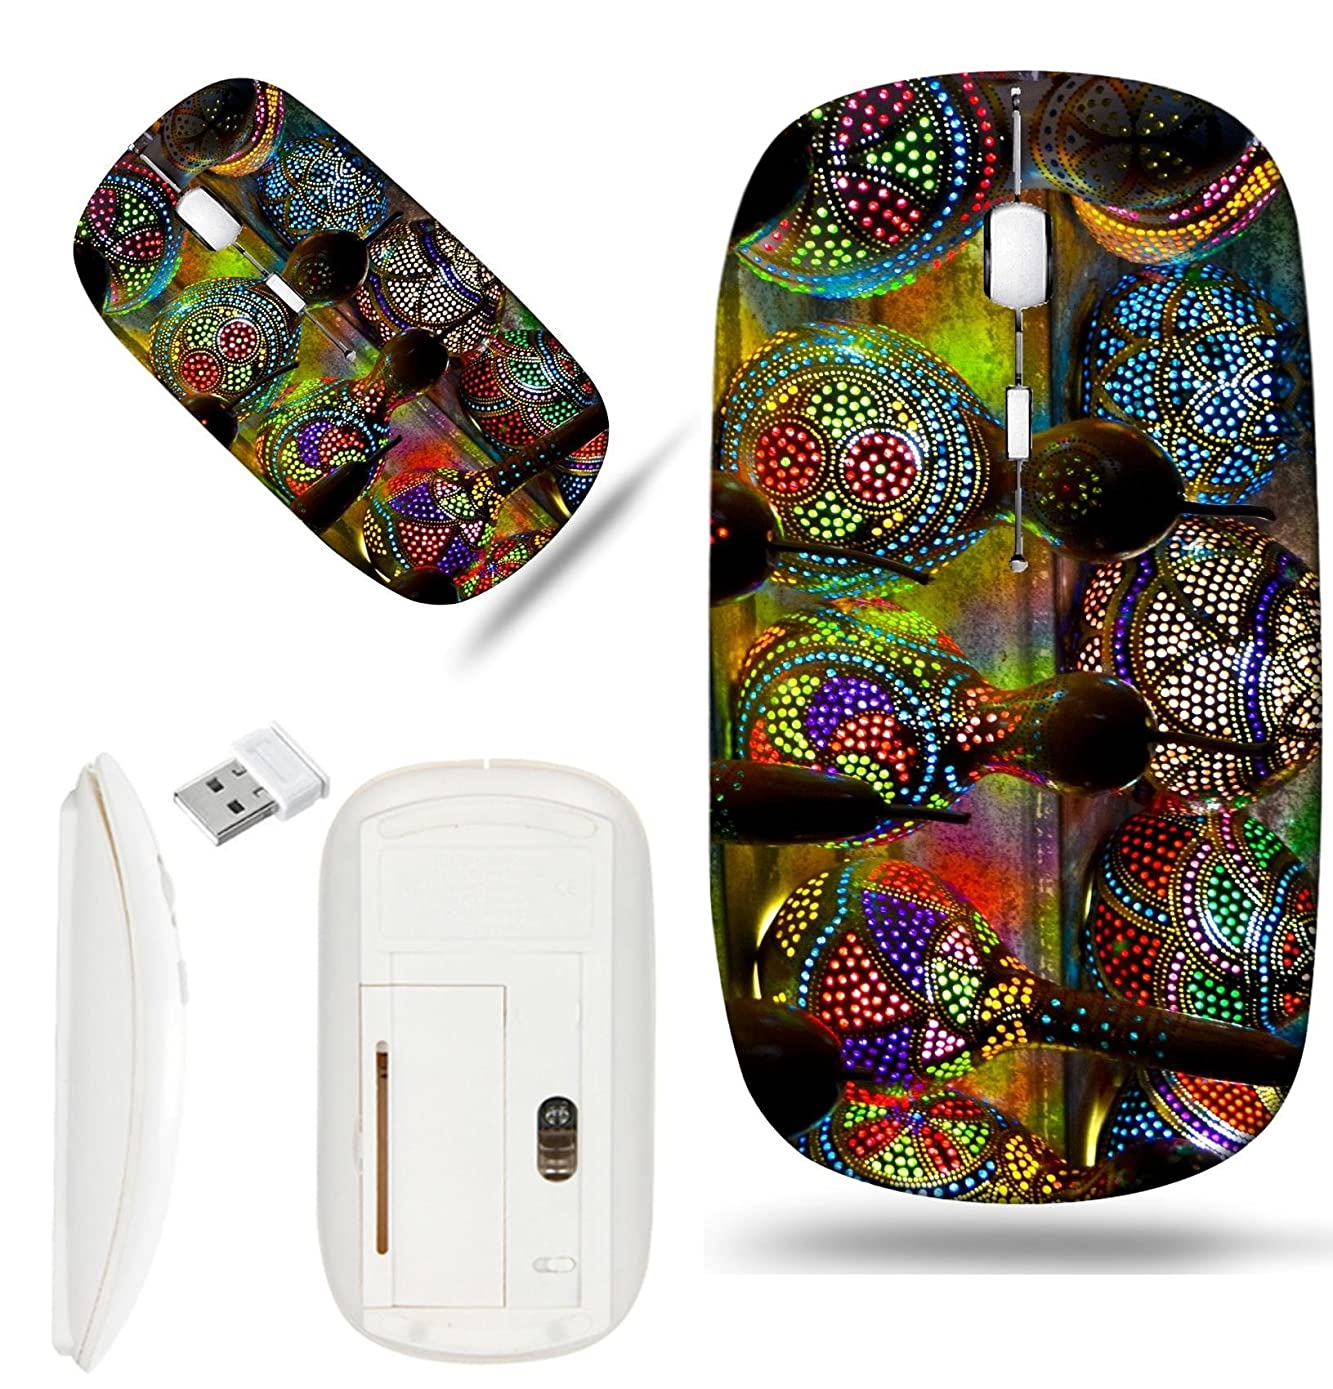 Luxlady Wireless Mouse White Base Travel 2.4G Wireless Mice with USB Receiver, 1000 DPI for notebook, pc, laptop, macdesign IMAGE ID: 22182795 Turkish Lamps at the Market in Istanbul Turkey